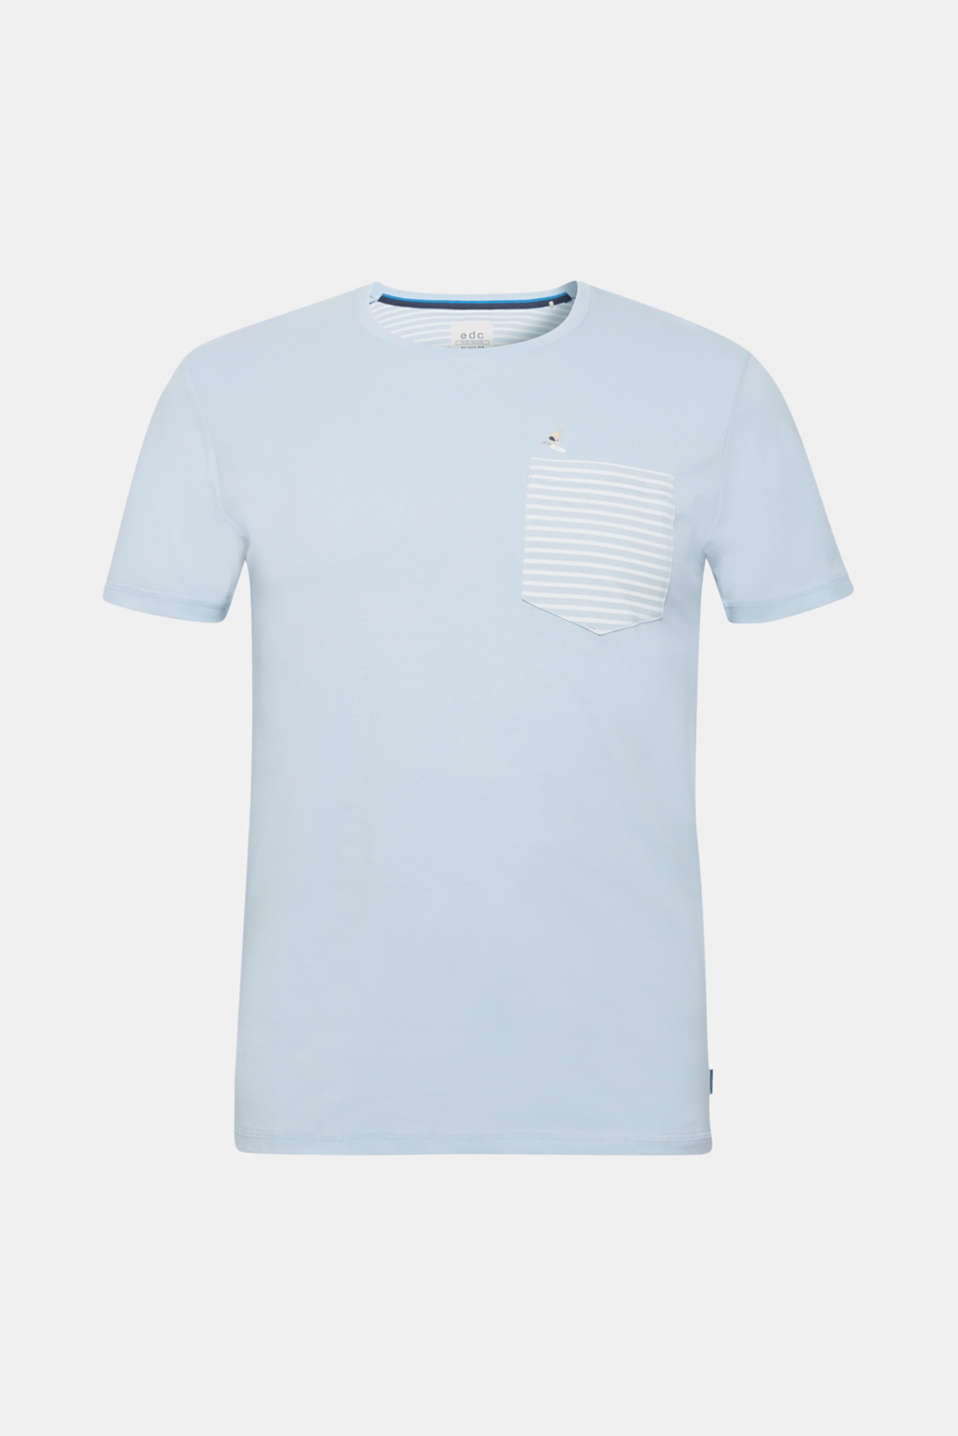 Jersey top with a breast pocket, made of 100% cotton, LIGHT BLUE, detail image number 7